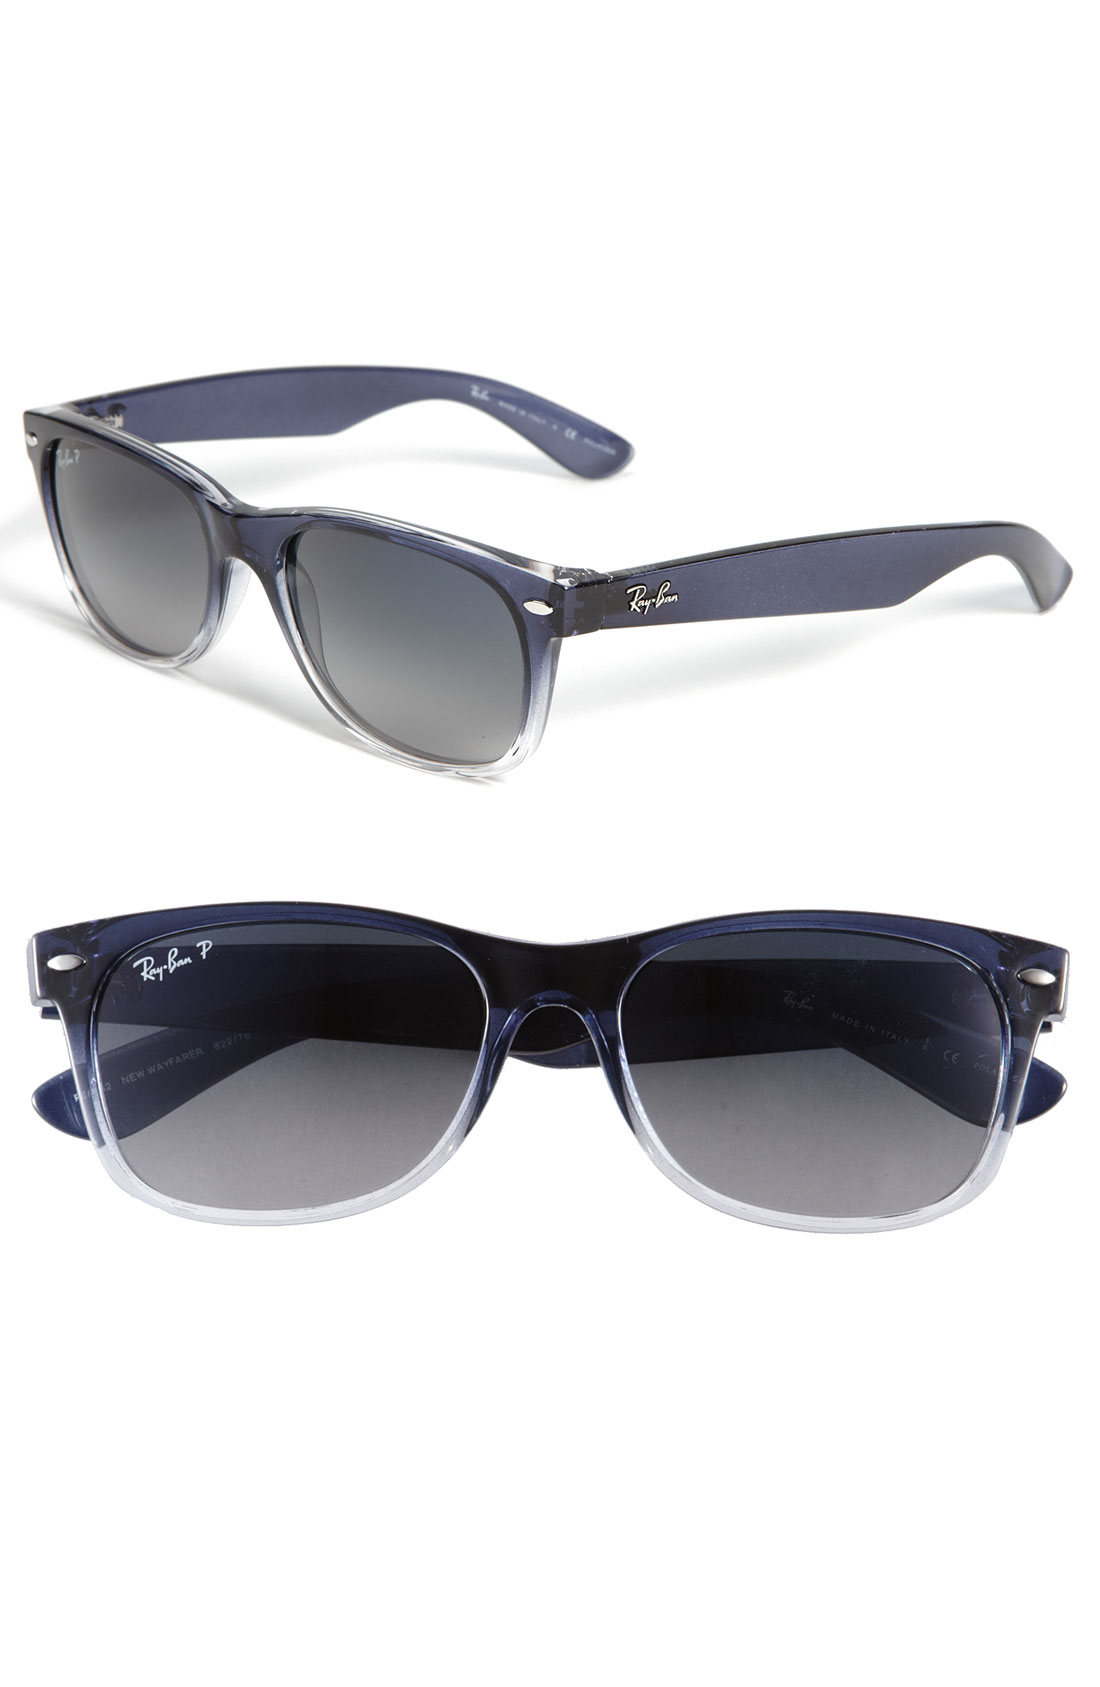 ray ban new wayfarer polarized sunglasses. Black Bedroom Furniture Sets. Home Design Ideas